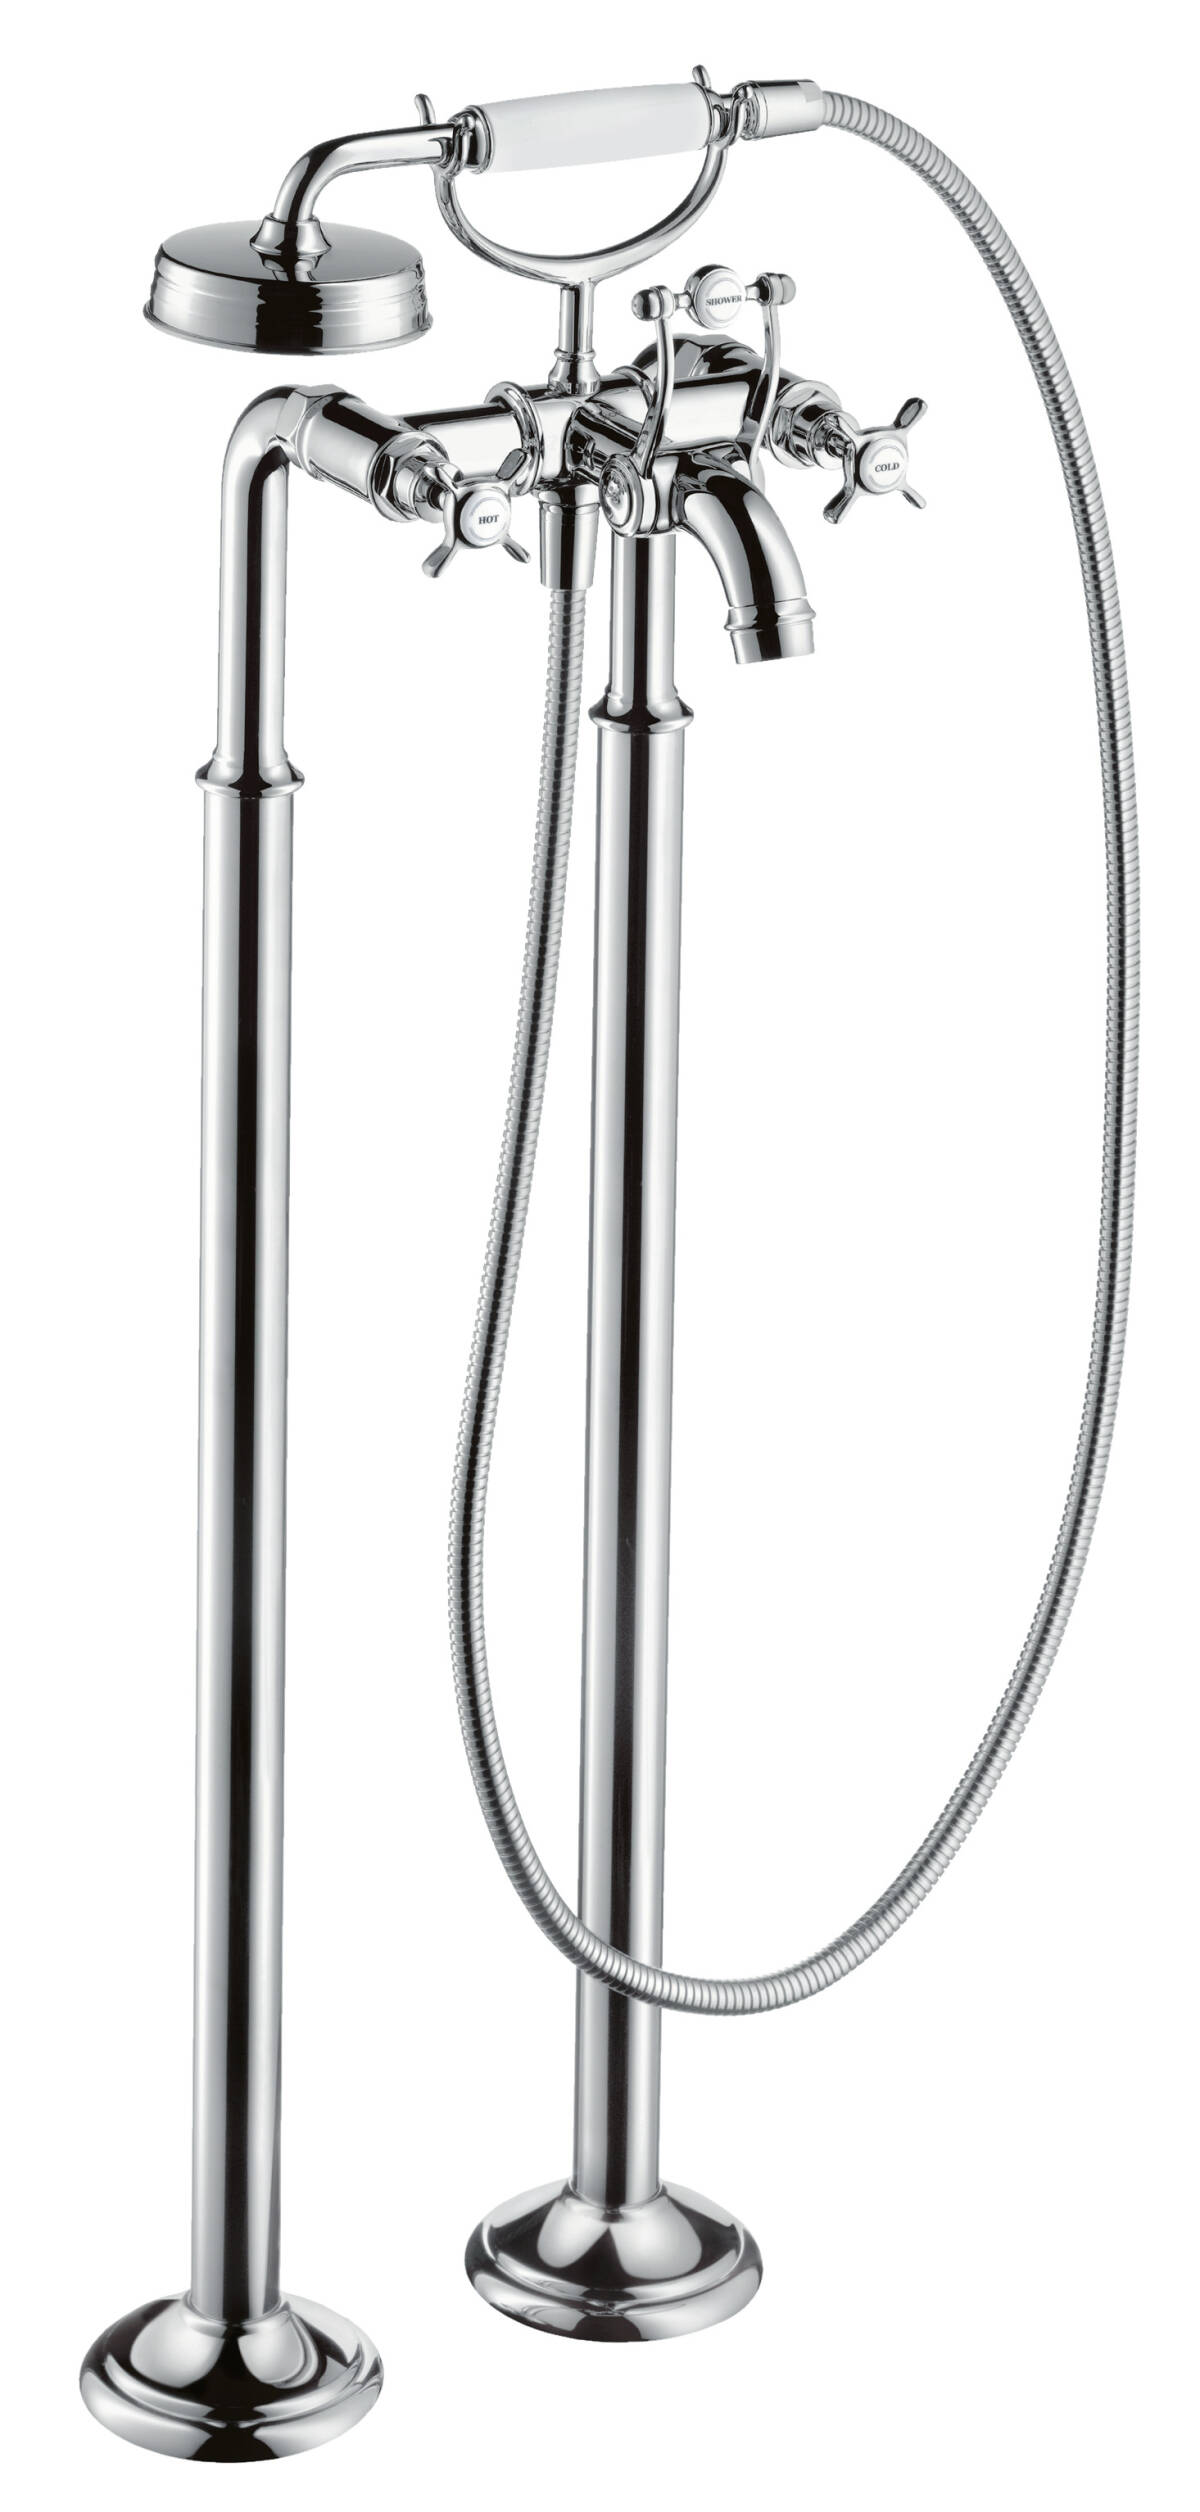 2-handle bath mixer floor-standing with cross handles, Stainless Steel Optic, 16547800